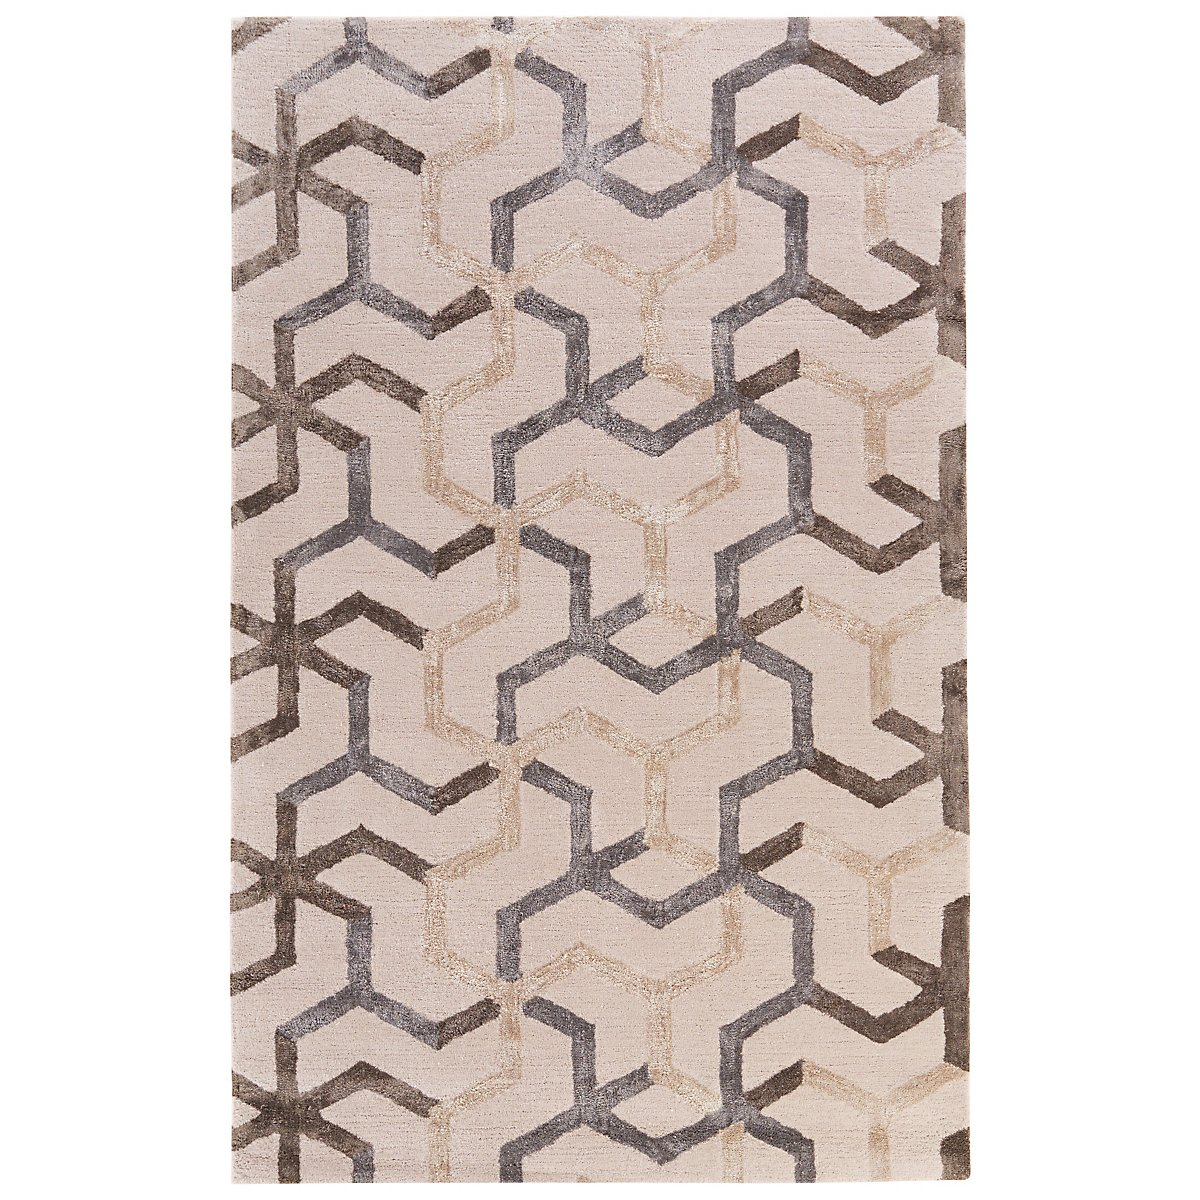 Addy Light Beige 8X10 Area Rug